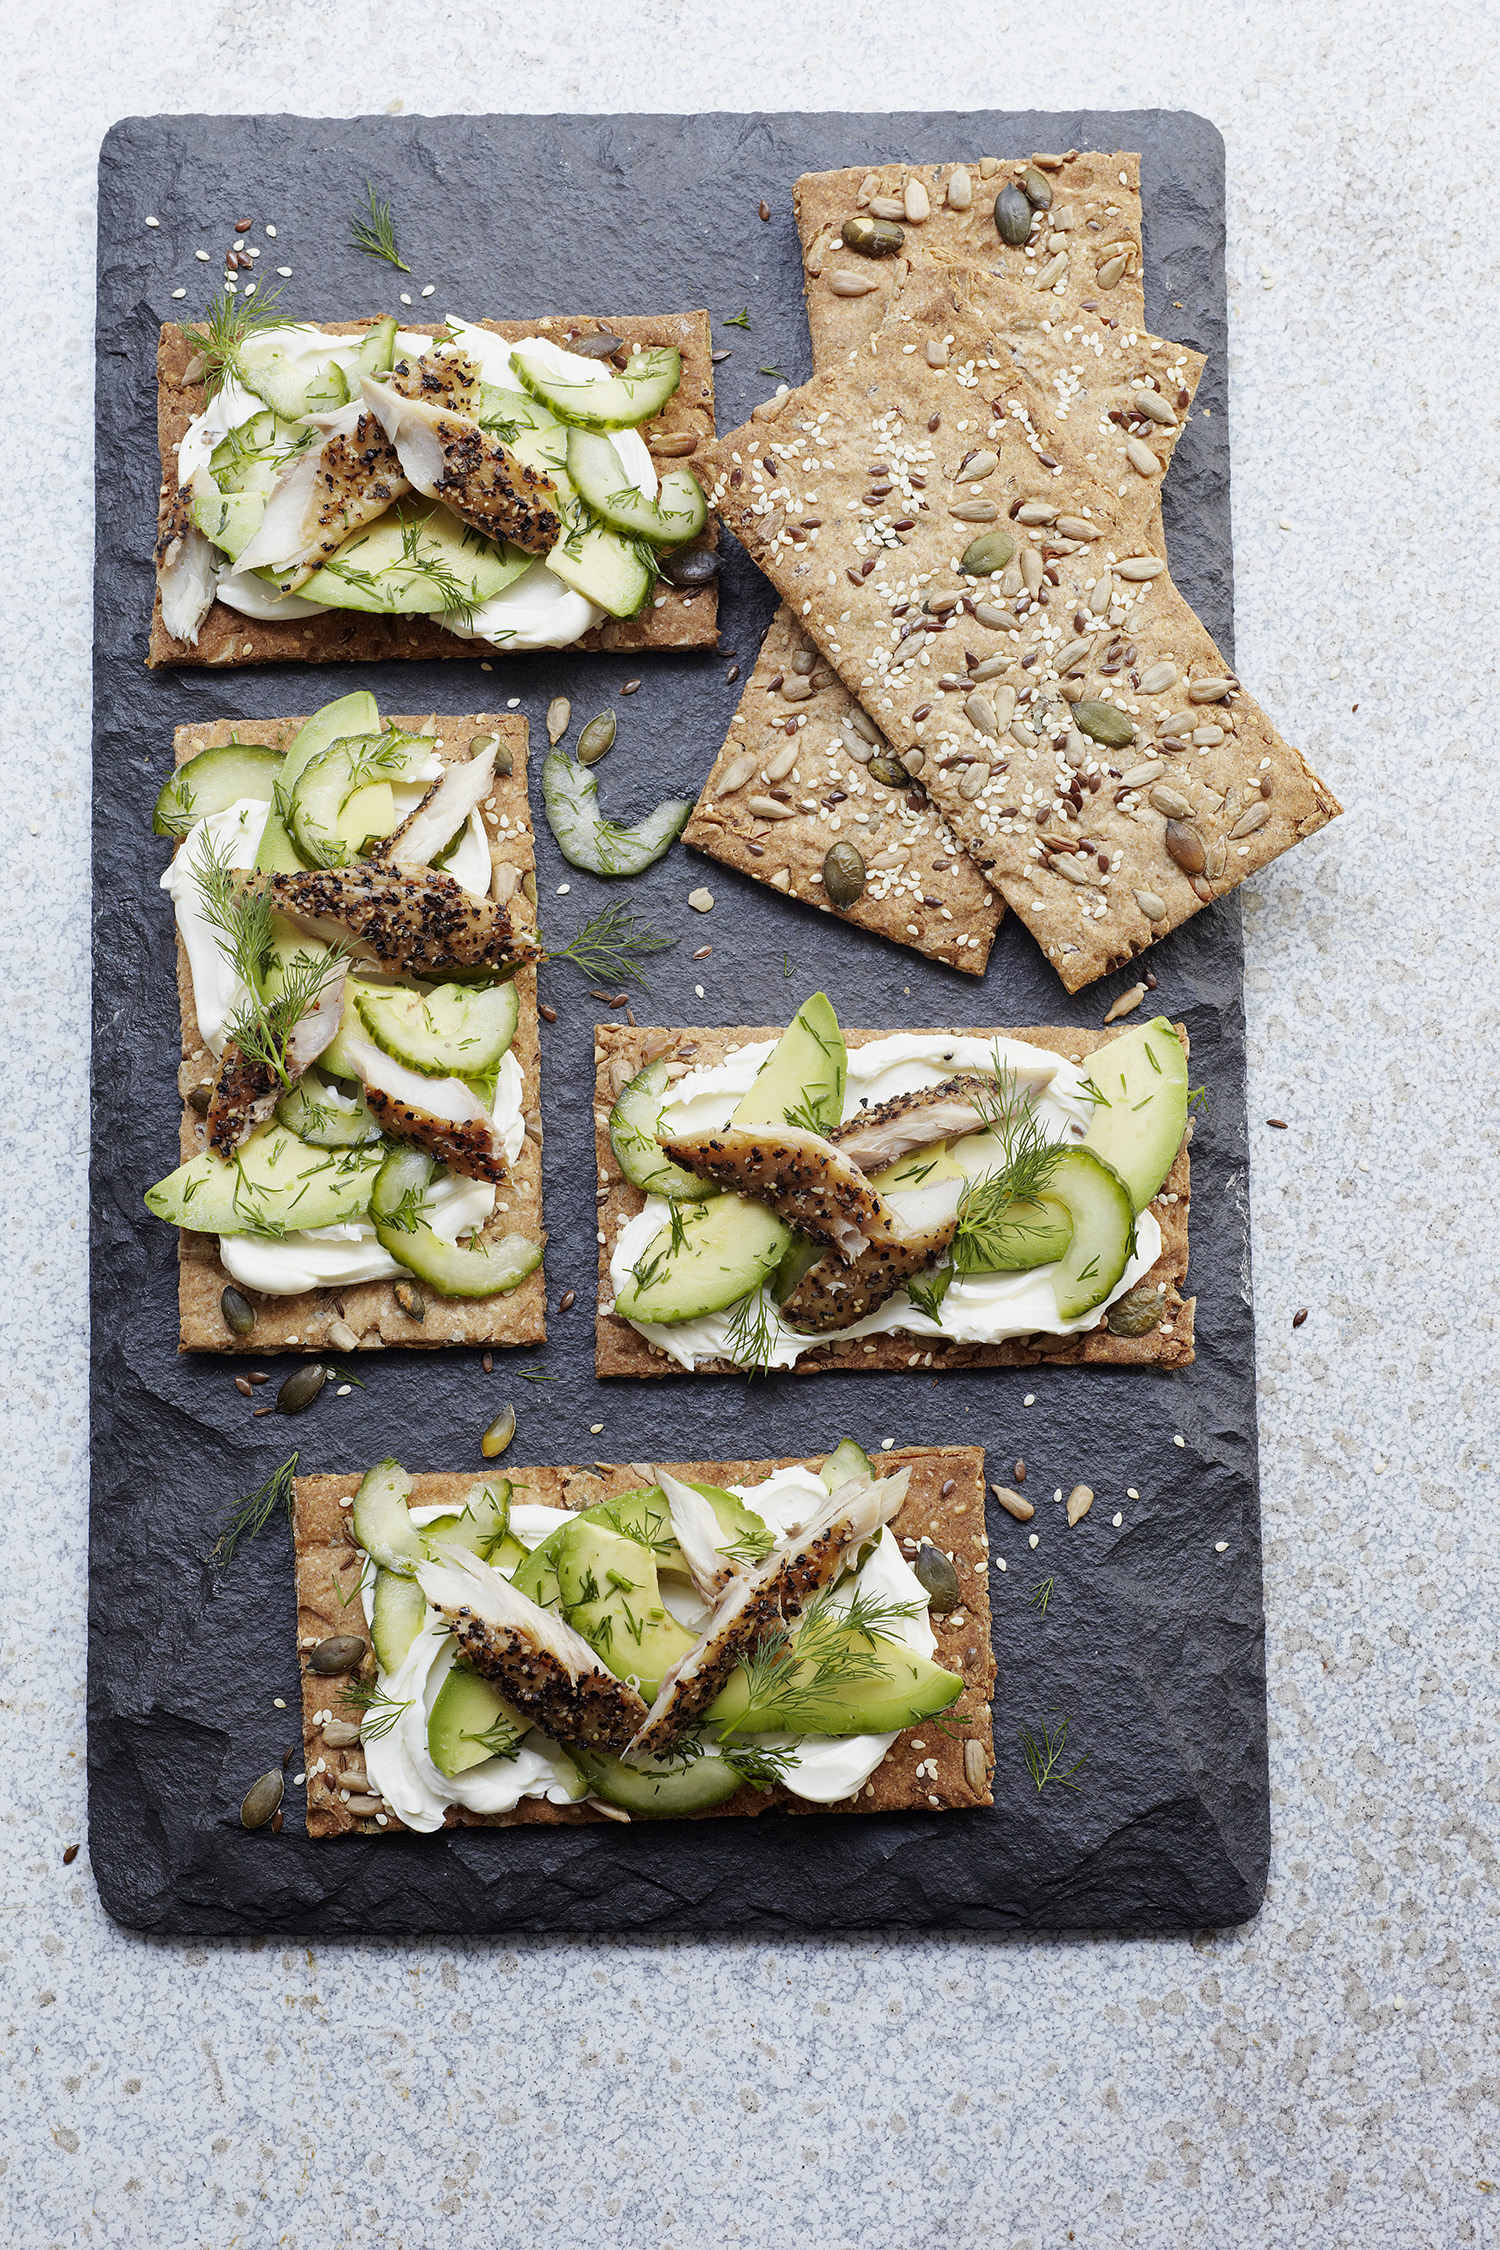 Crispbread, Mackerel & Dill-Pickled Avo Photograph Clare Winfield, Prop Styling Wei Tang (from The Goodness of Avocado)